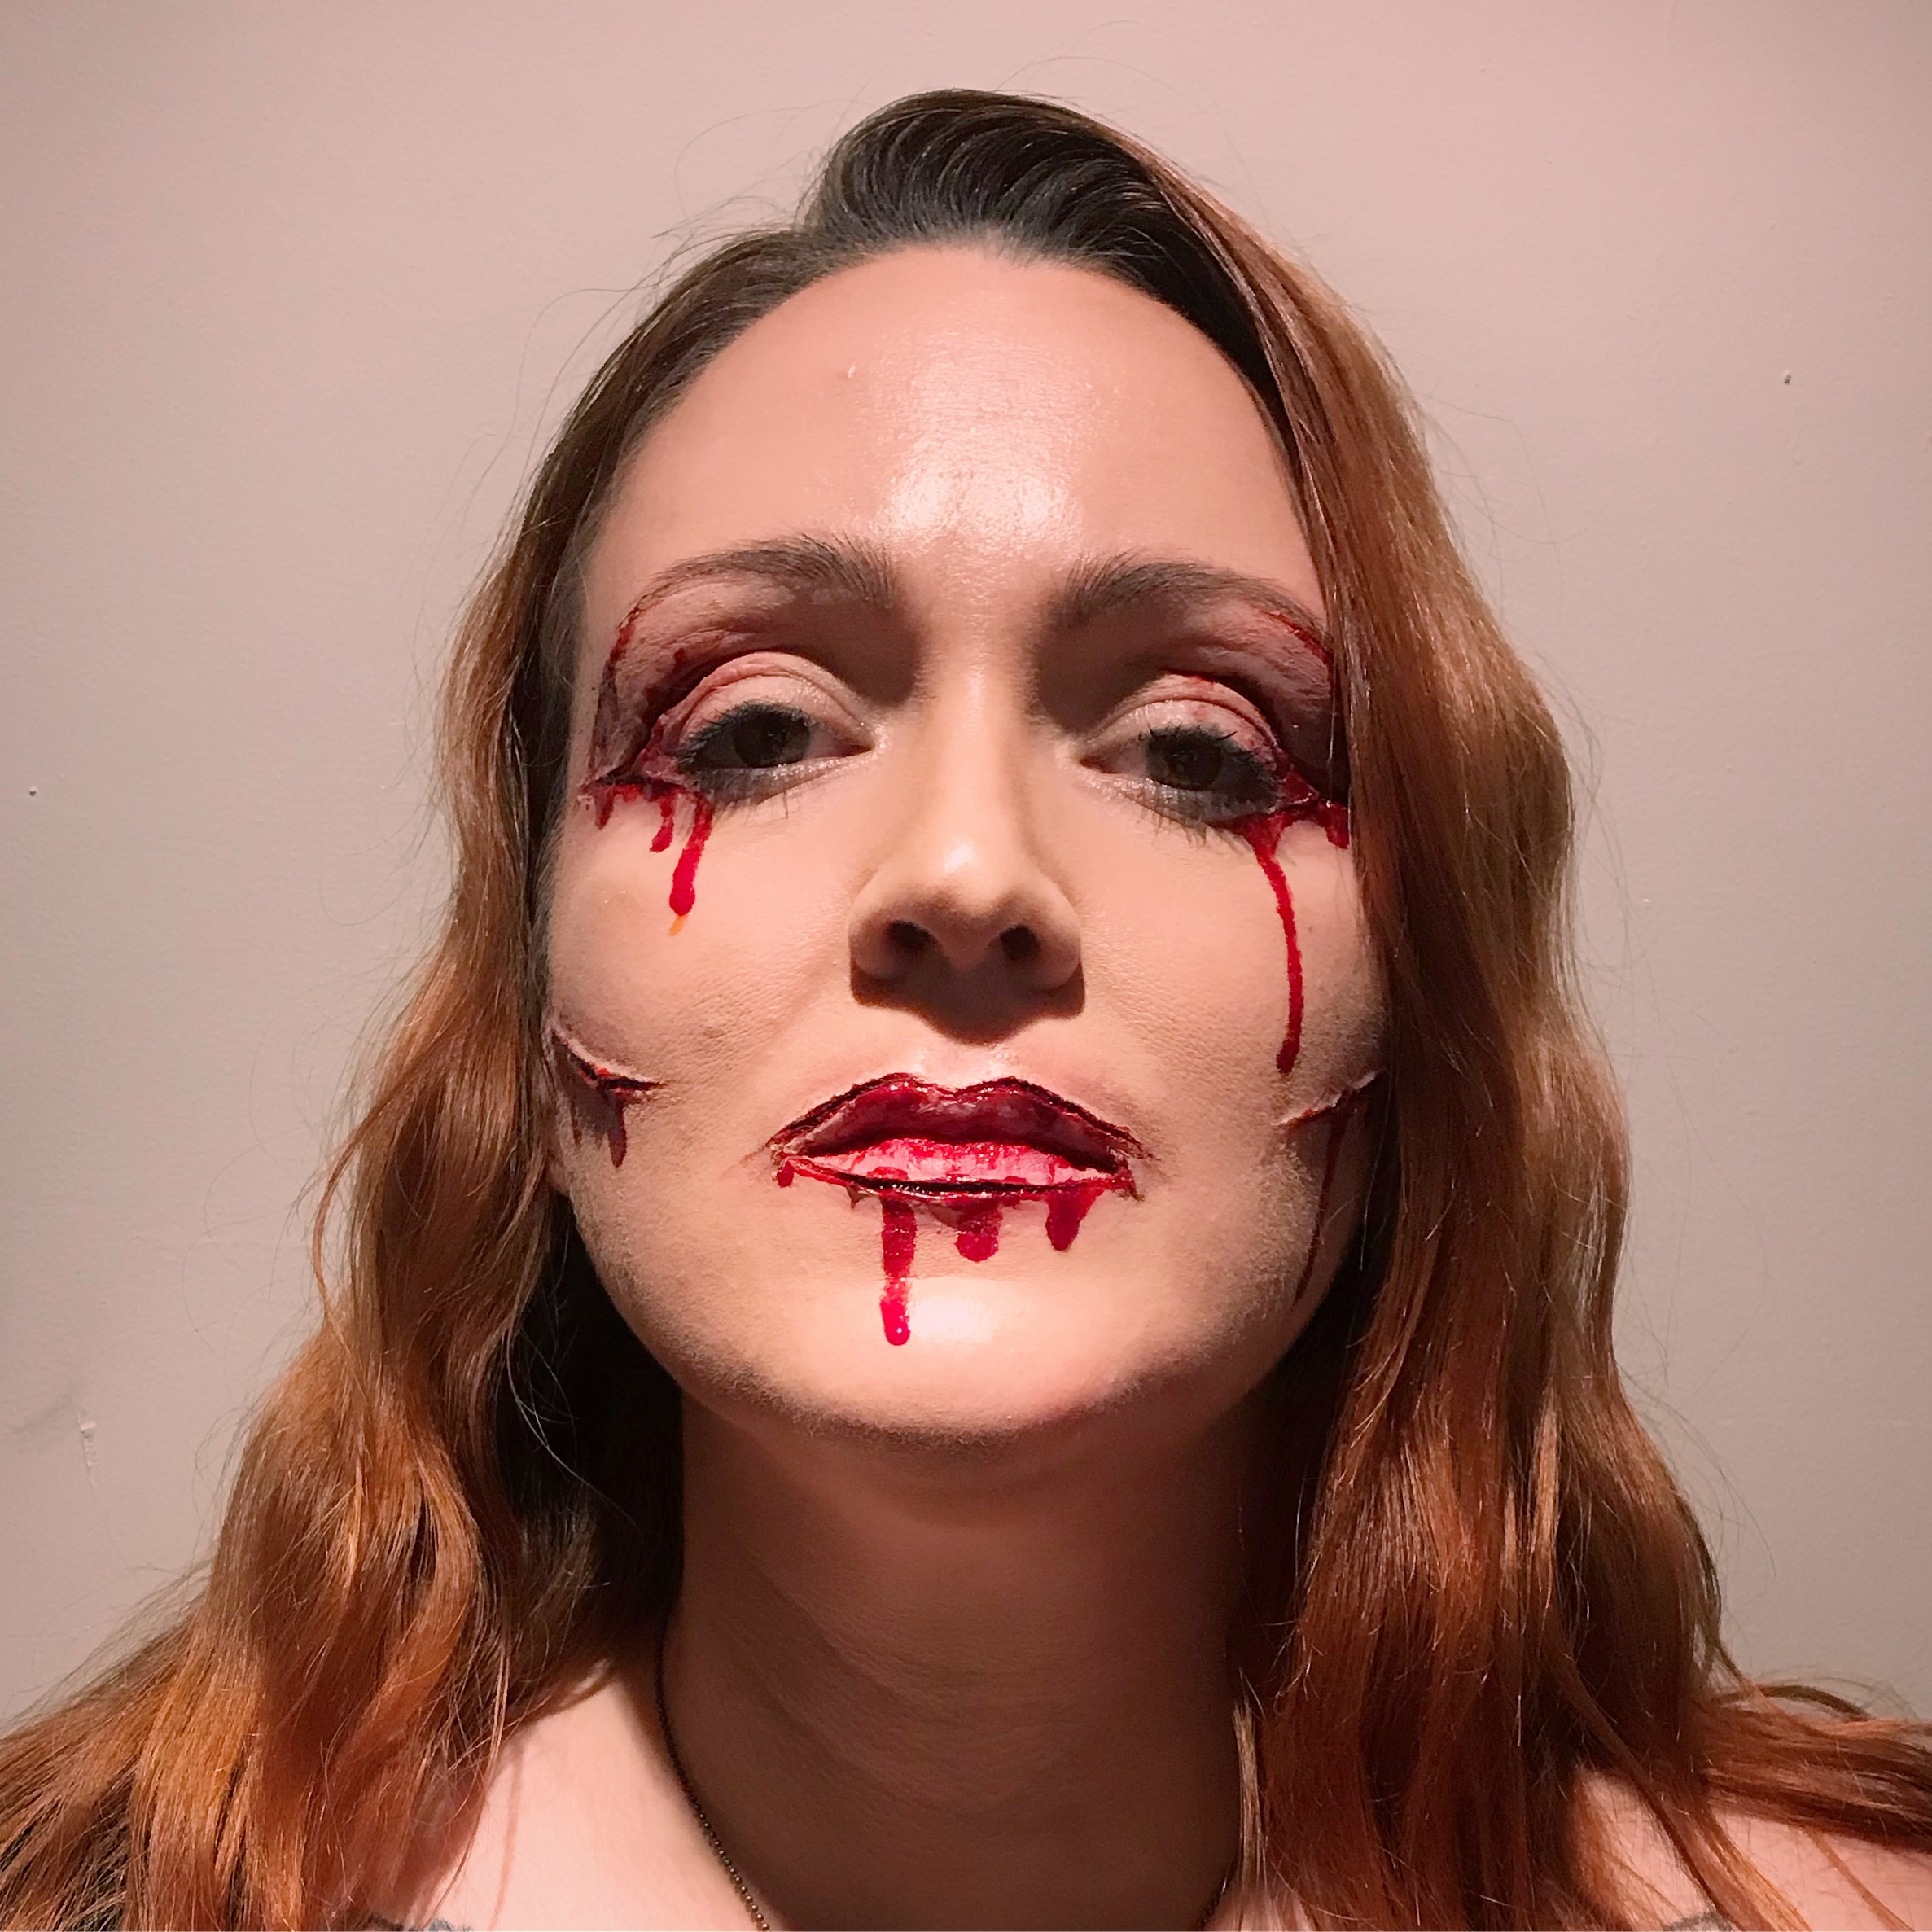 everyday is halloween – beautiful gore - 9to5 (dot cc)